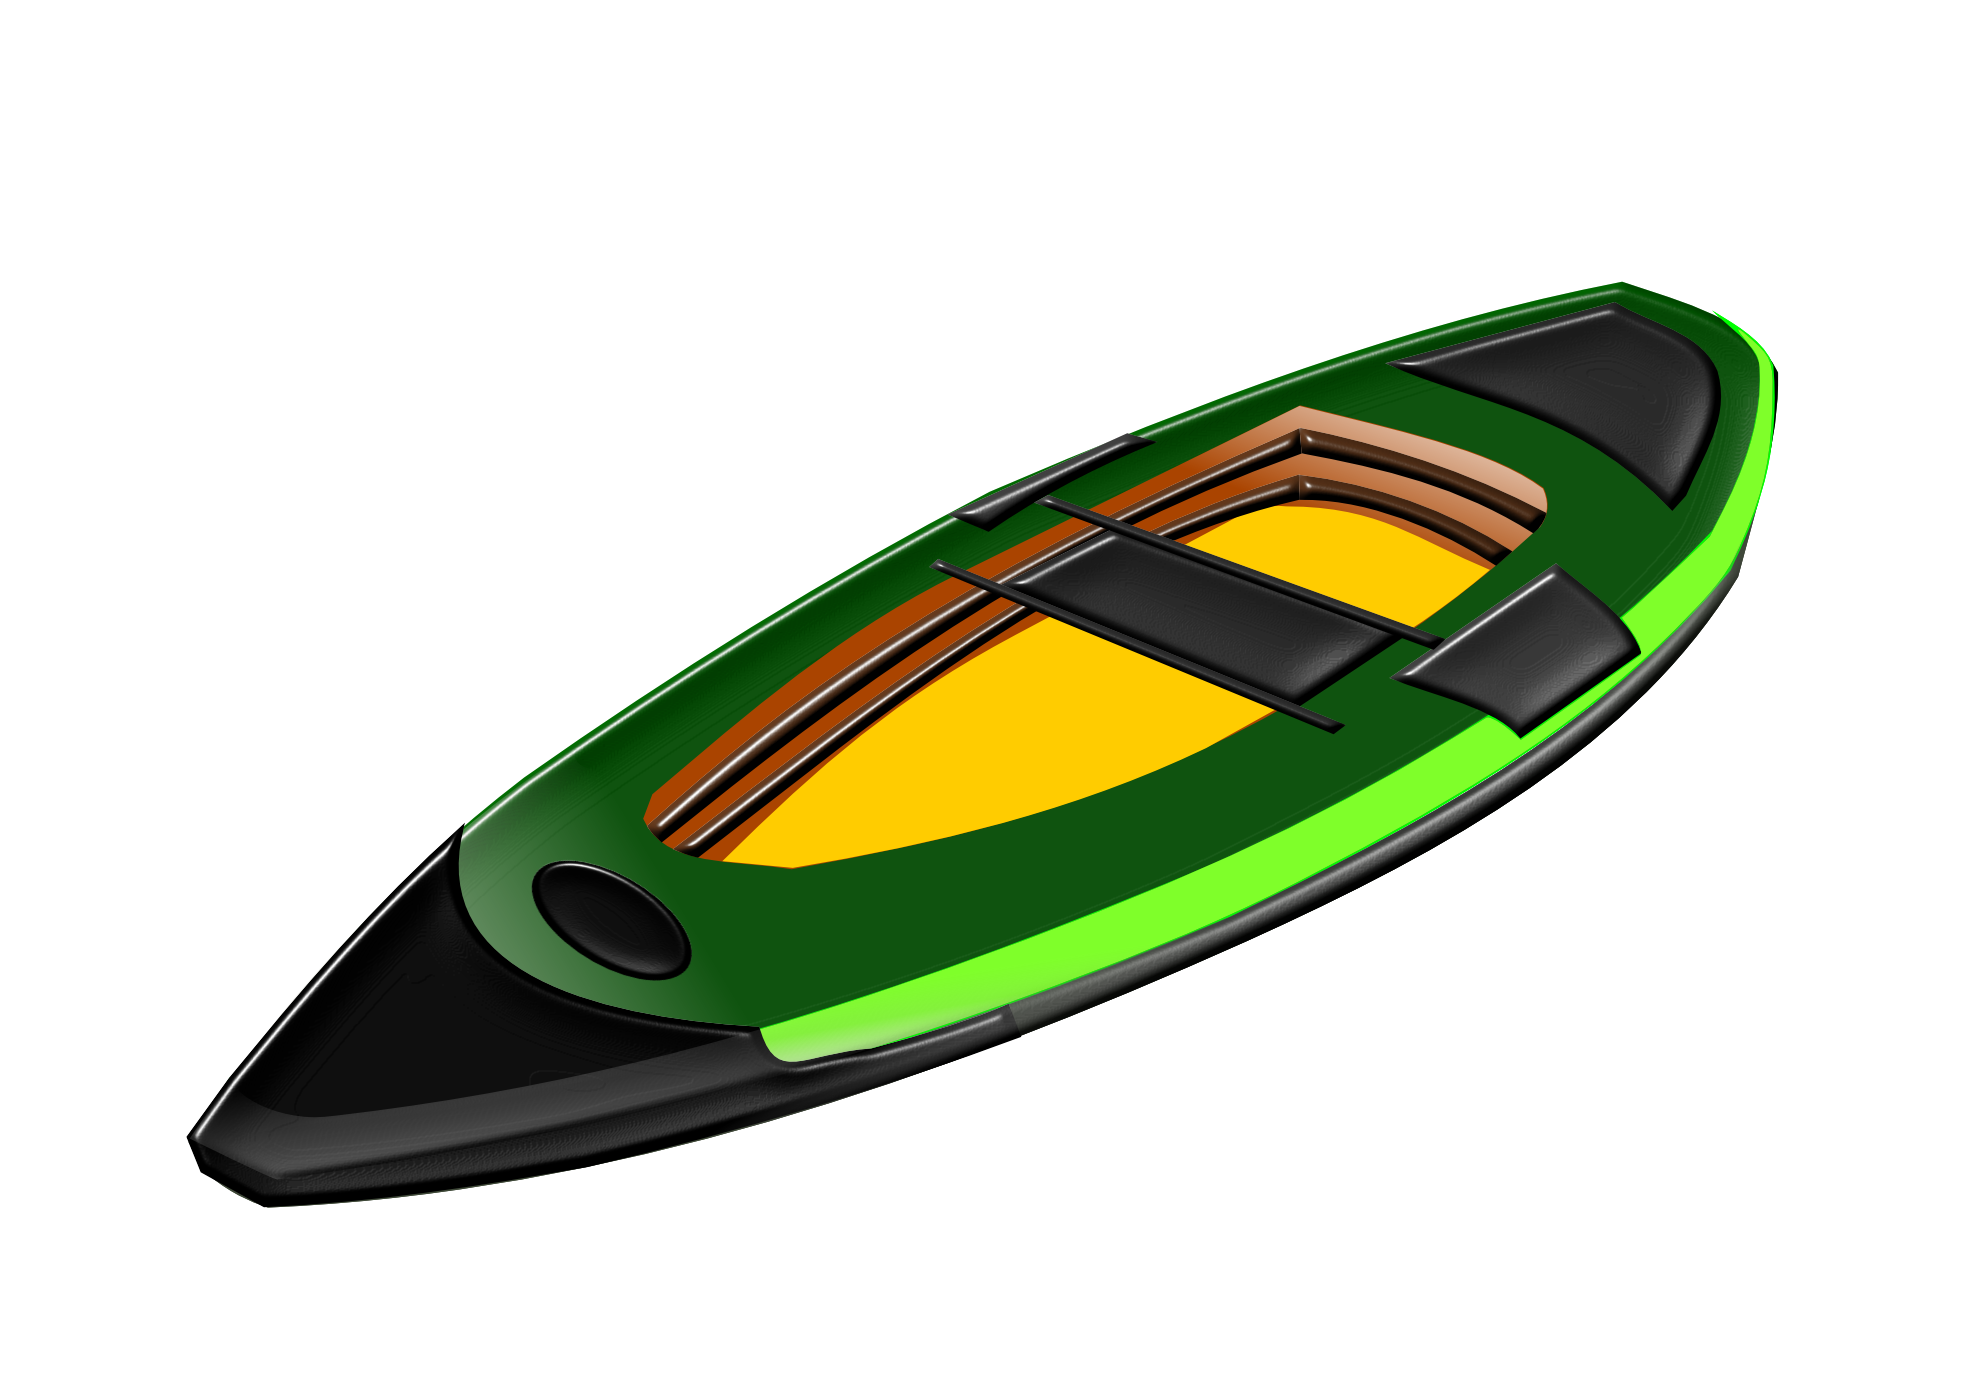 Canoe svg #1, Download drawings